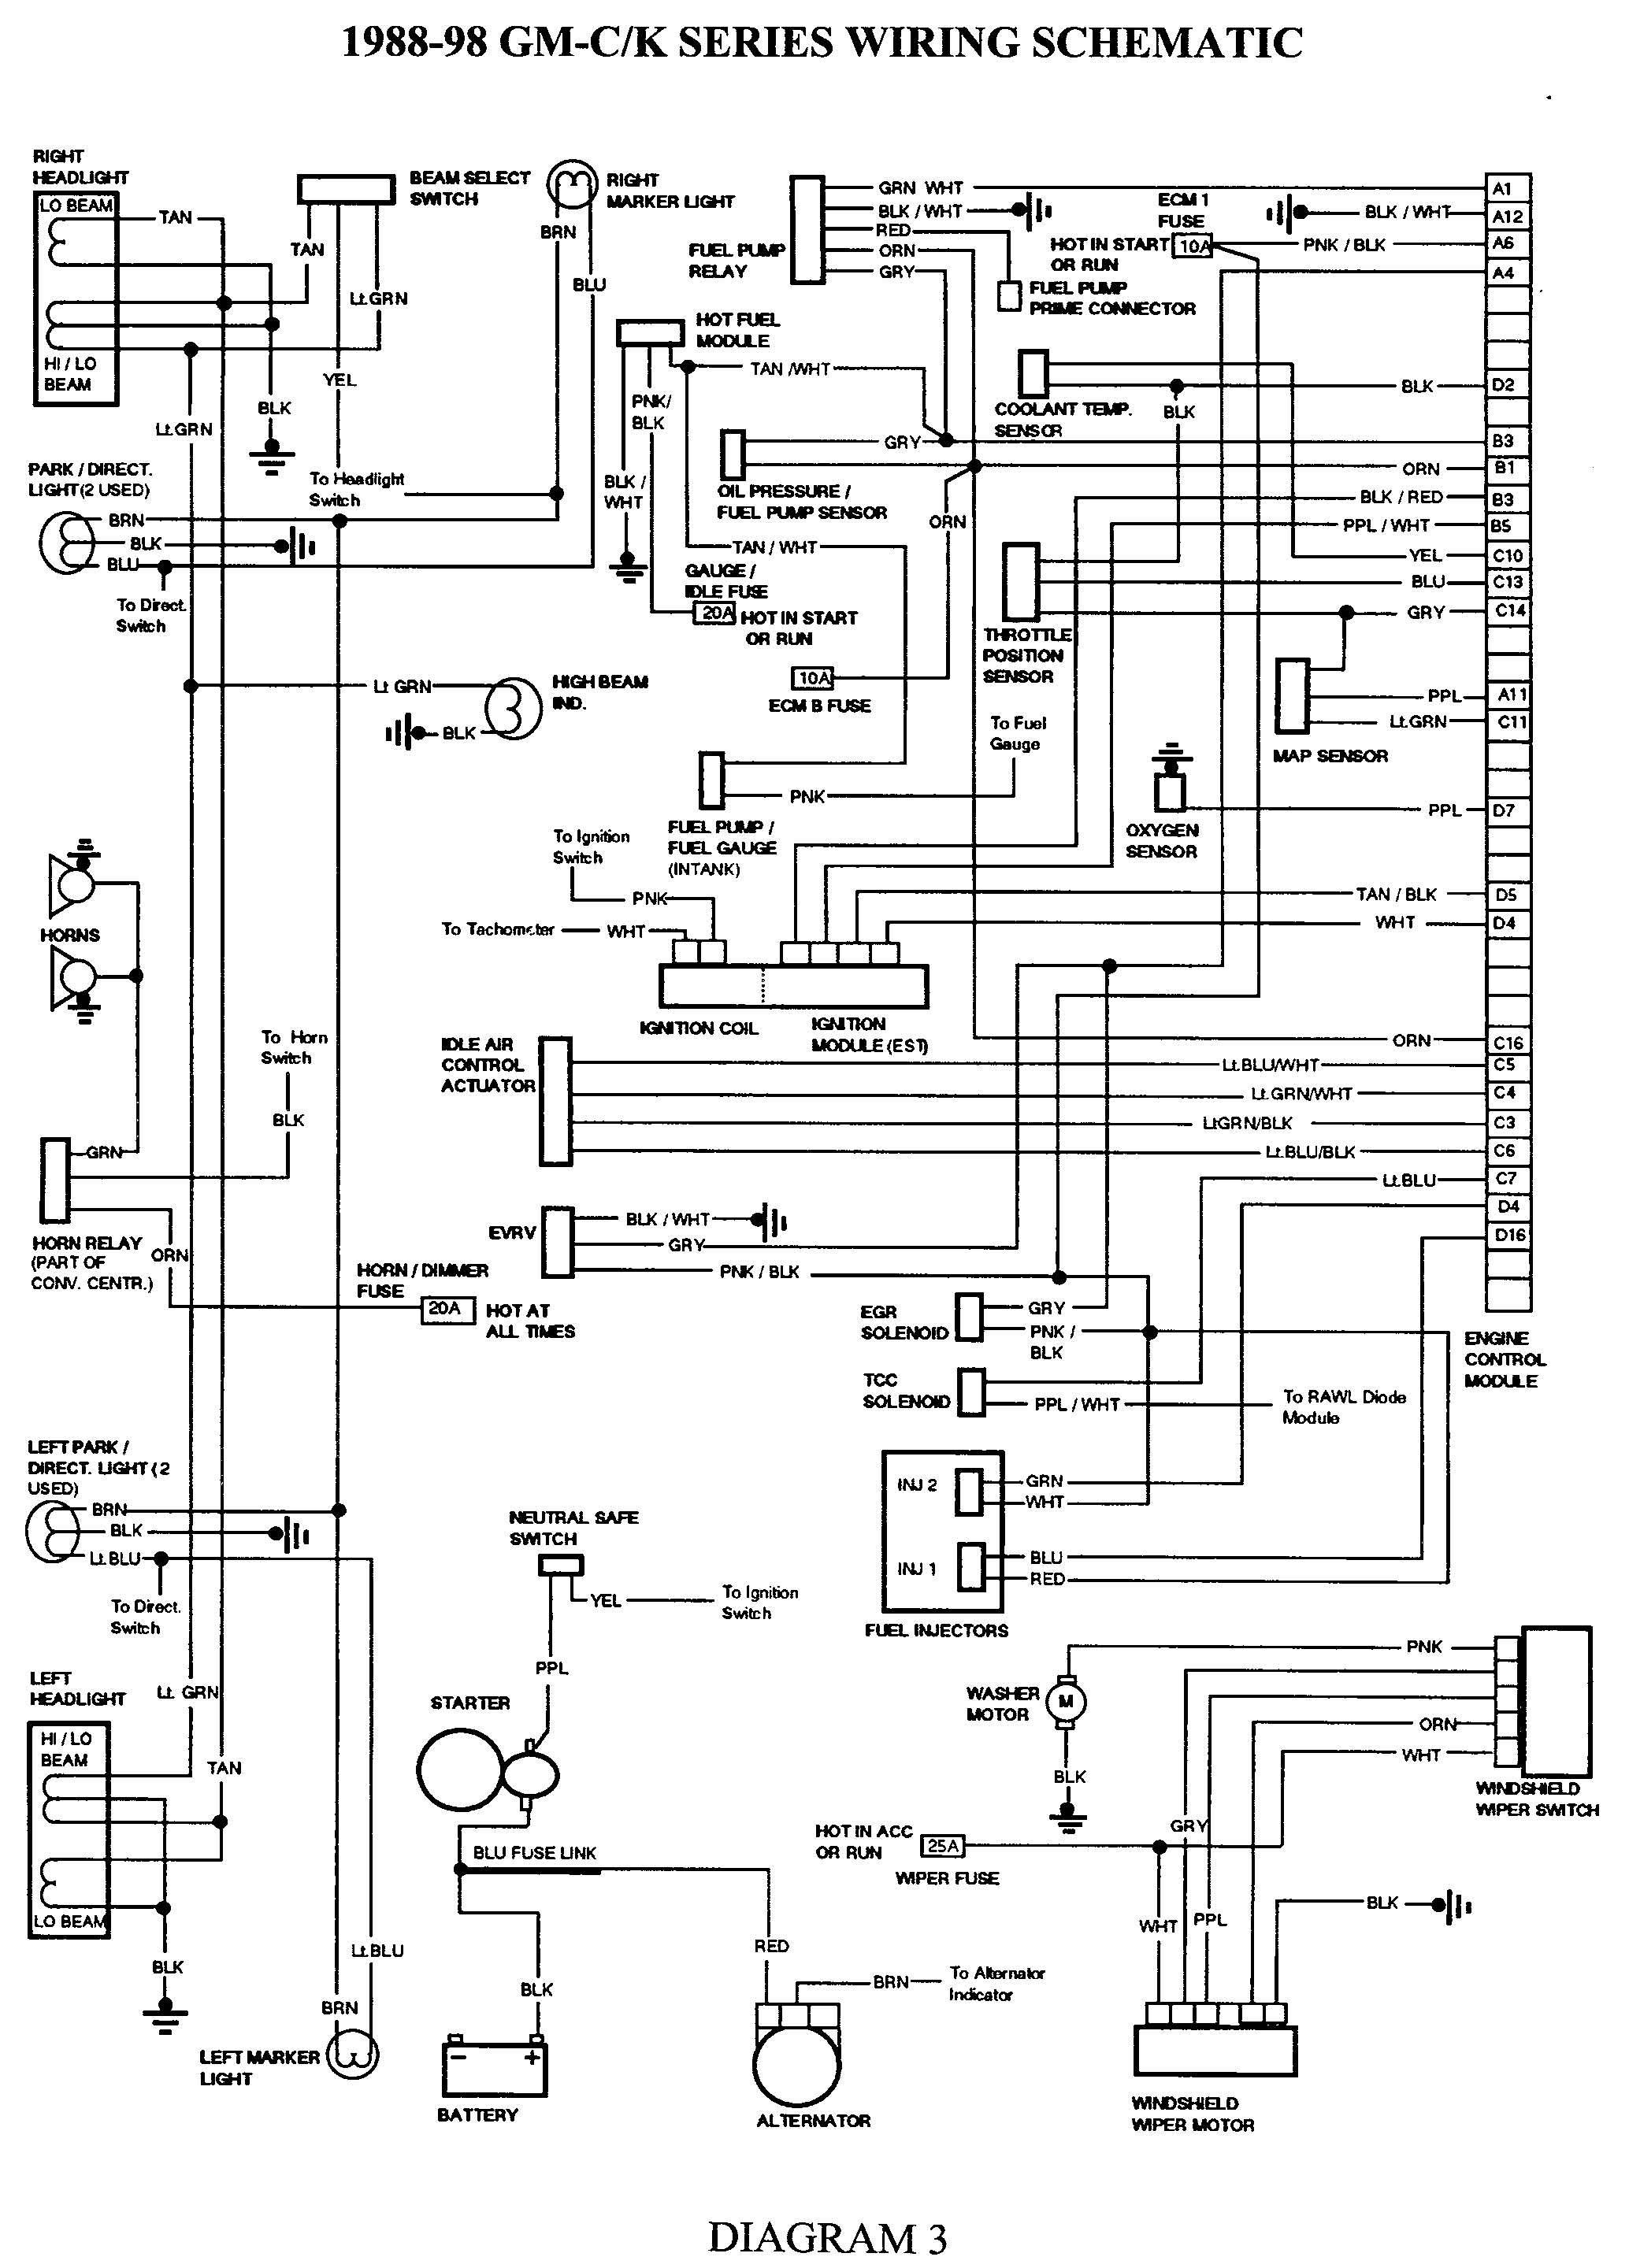 Wiring Diagram - bookingritzcarlton.info | Electrical diagram, Electrical  wiring diagram, Chevy 1500 | 2005 Gmc Yukon Engine Wiring Diagram |  | Pinterest